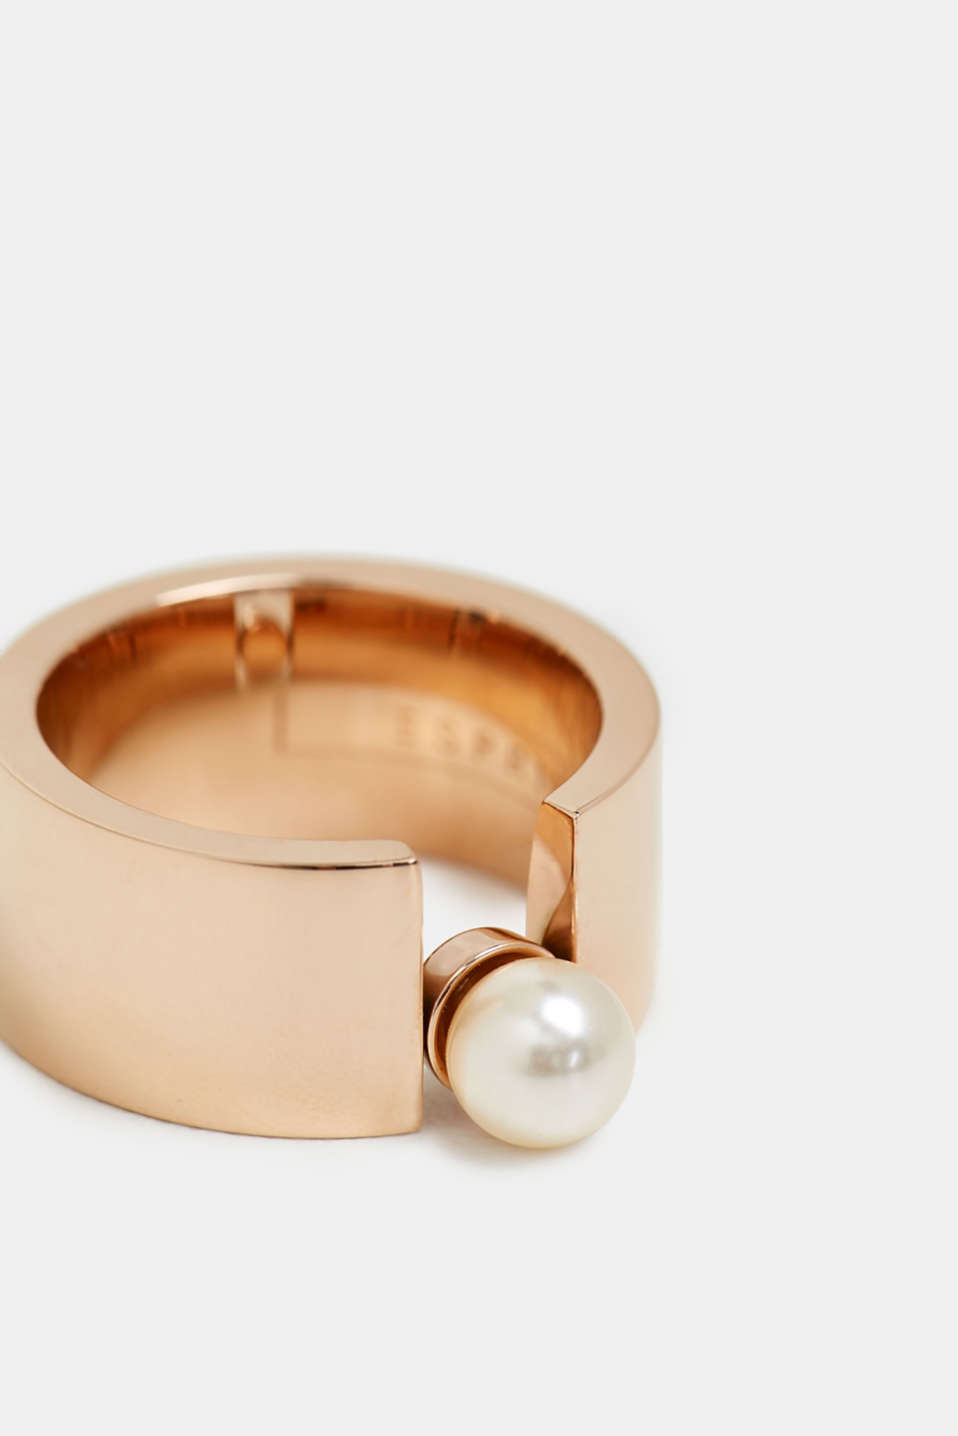 Wide ring with beads, stainless steel, ROSEGOLD, detail image number 1